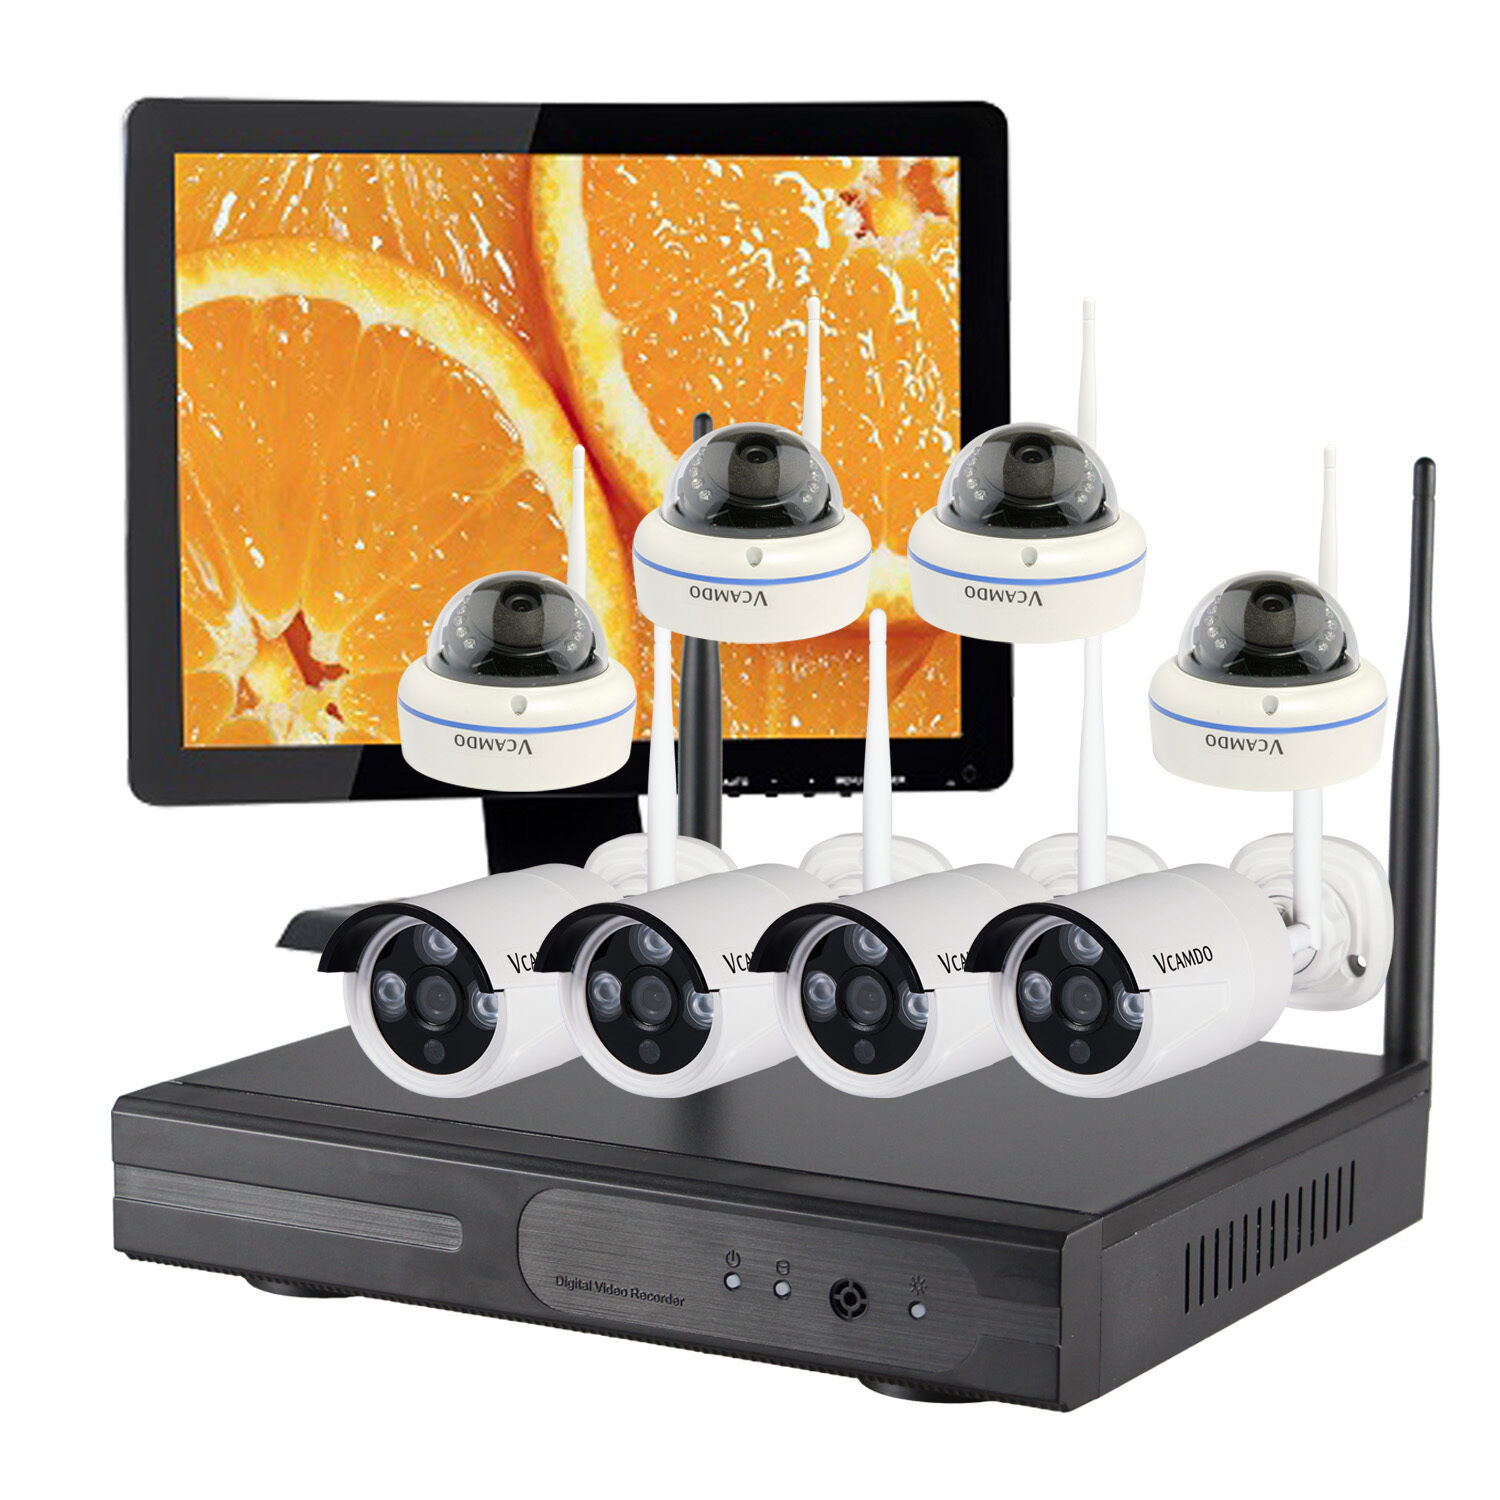 8CH Wireless Home CCTV System Security Surveillance WiFi IP Camera HDMI Monitor